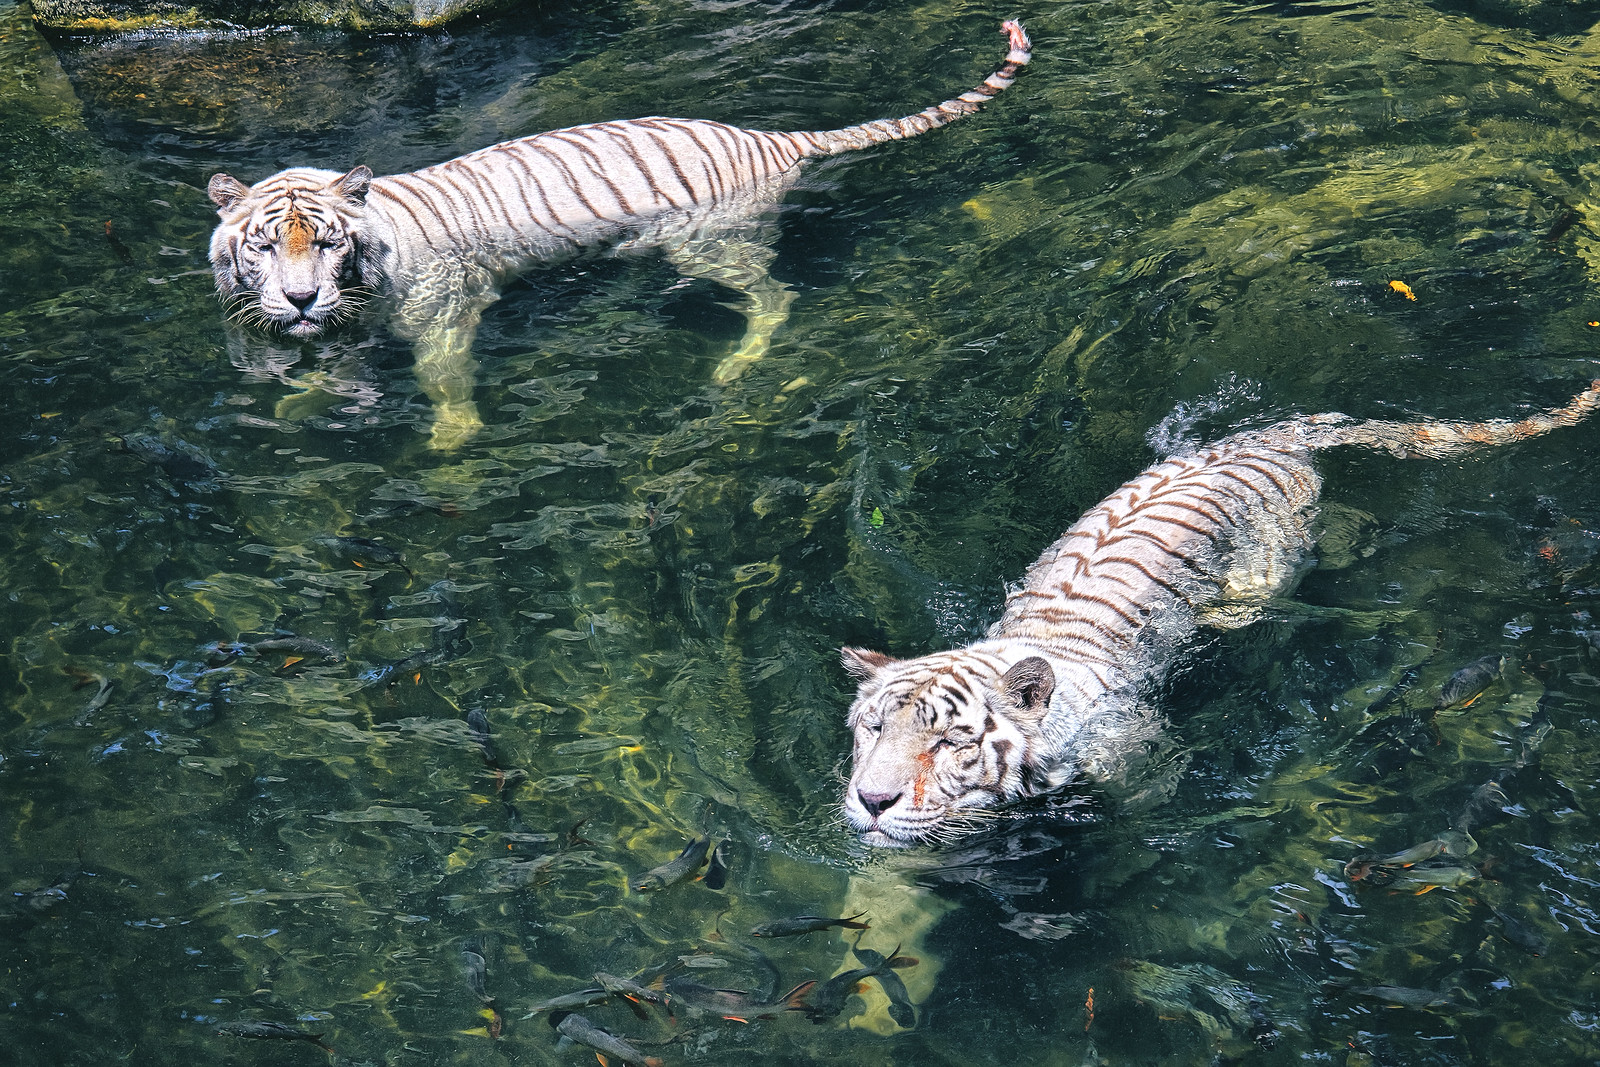 White Tigers swimming